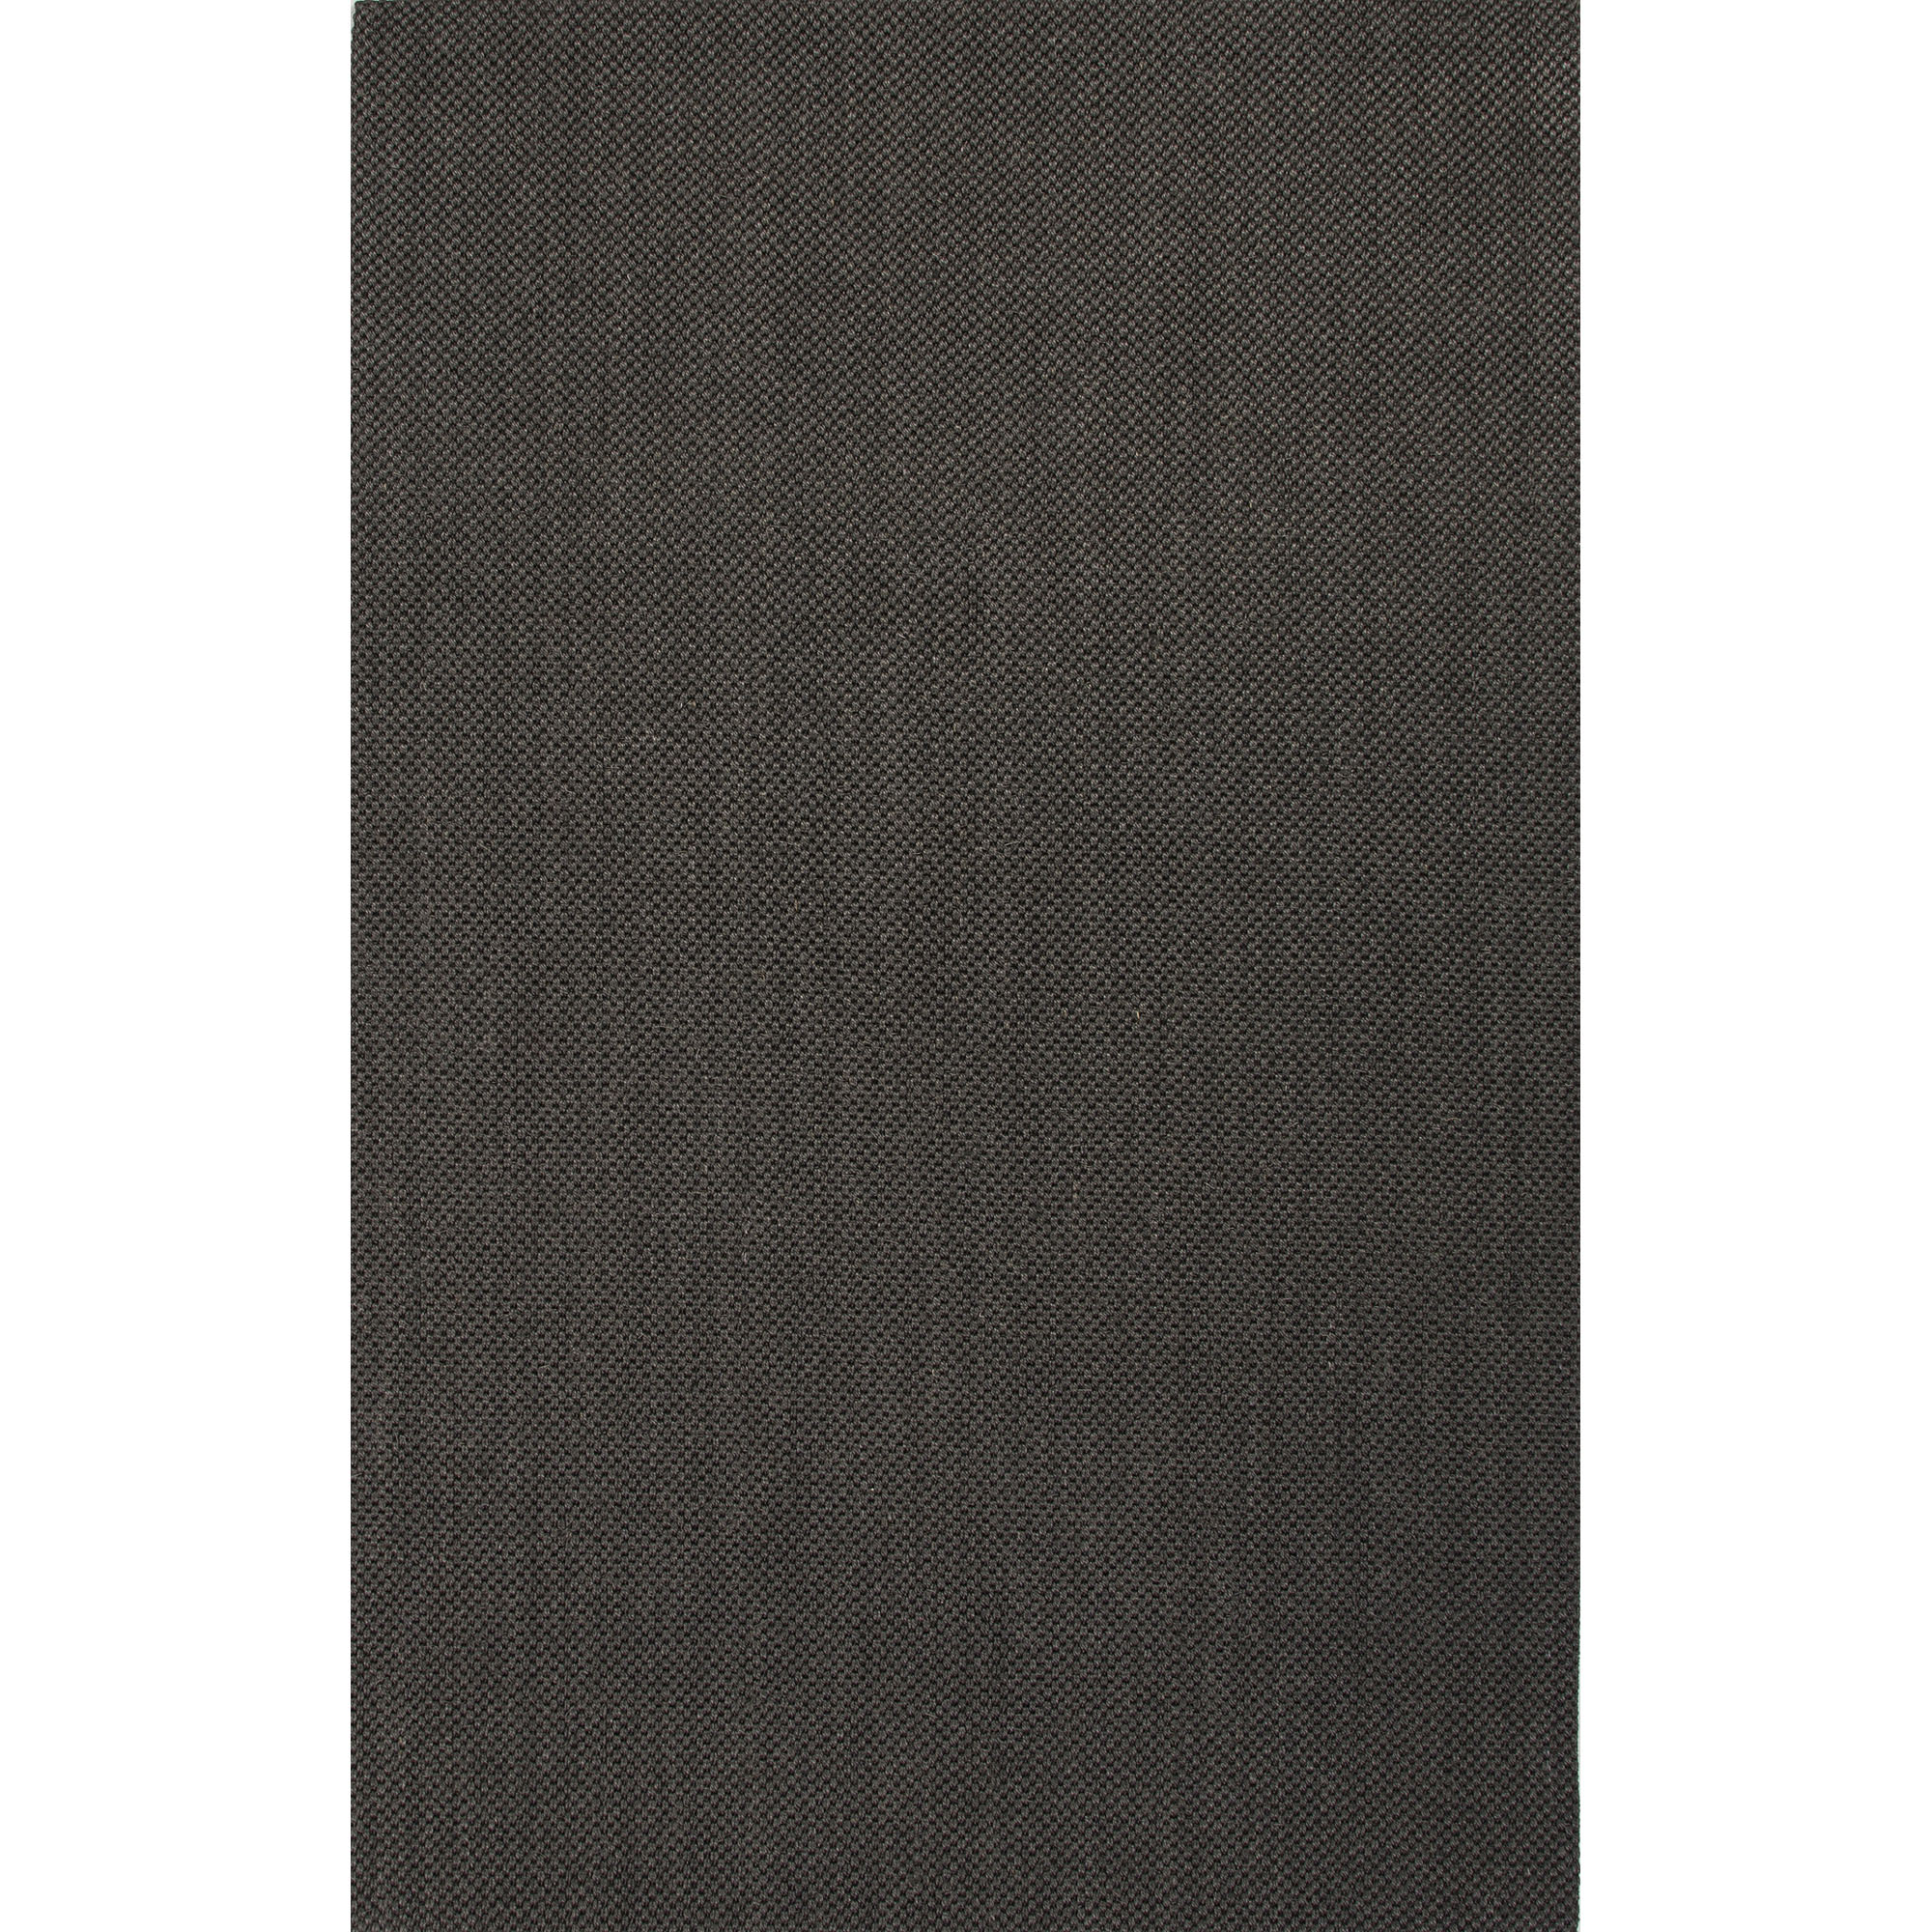 JAIPUR Rugs Naturals Sanibel 9 x 12 Rug - Item Number: RUG119171